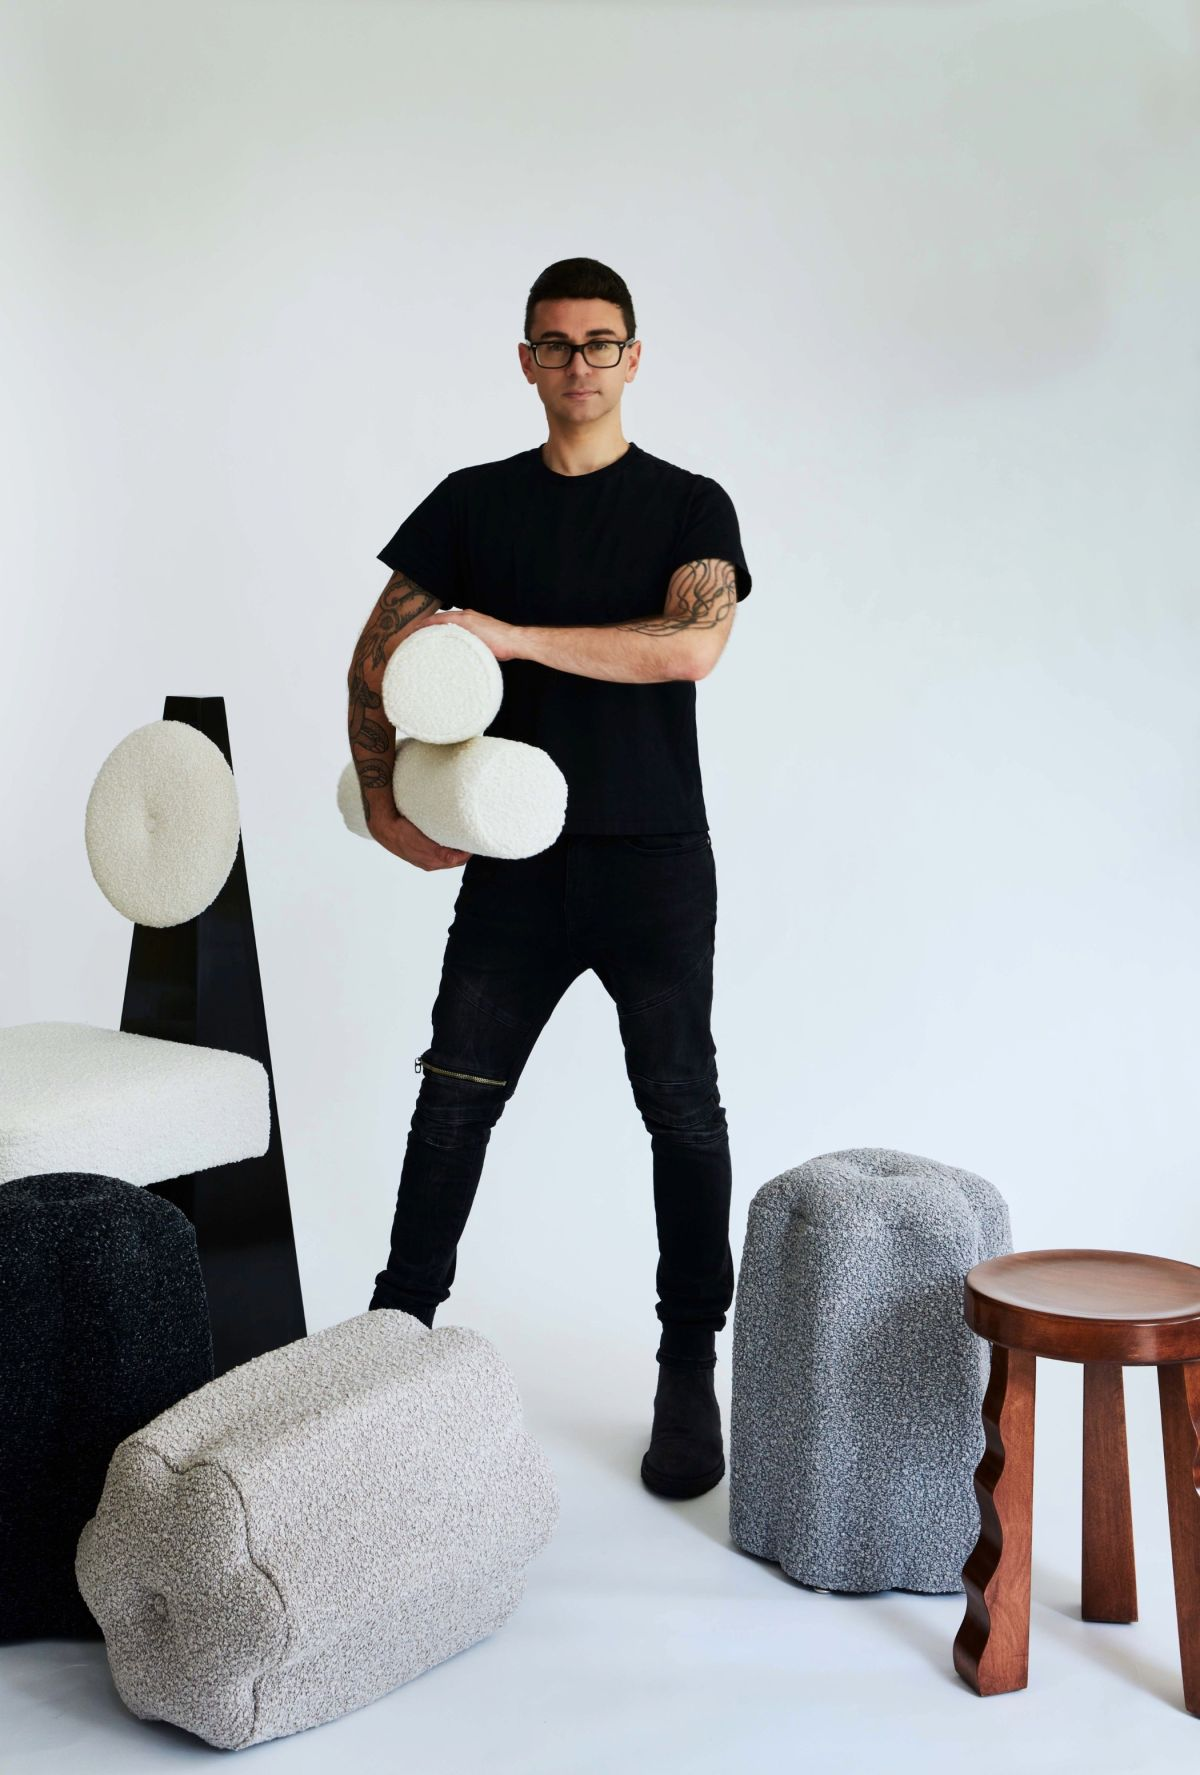 Homes & Gardens exclusive: Christian Siriano unveils his first furniture collection with 1stDibs